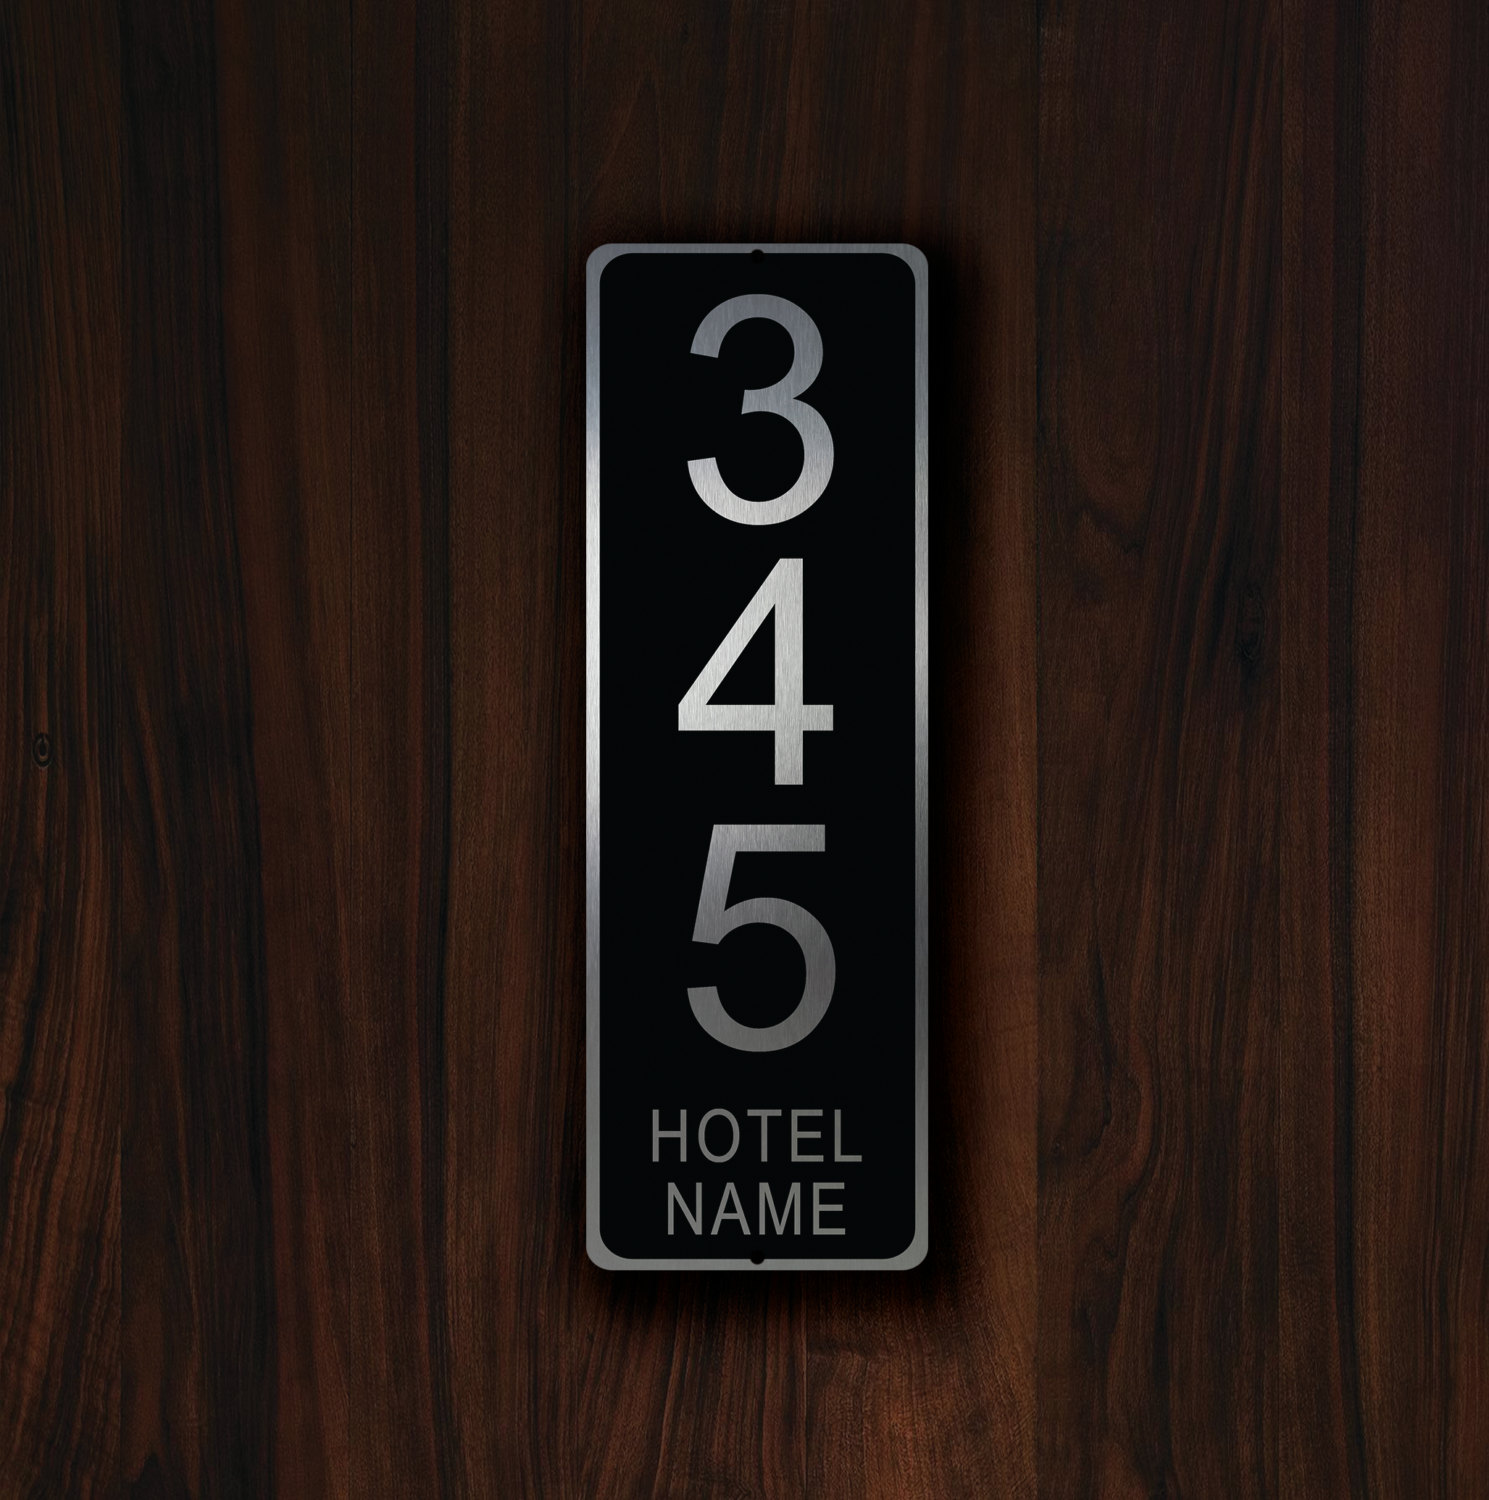 & CUSTOM HOTEL ROOM Number Sign